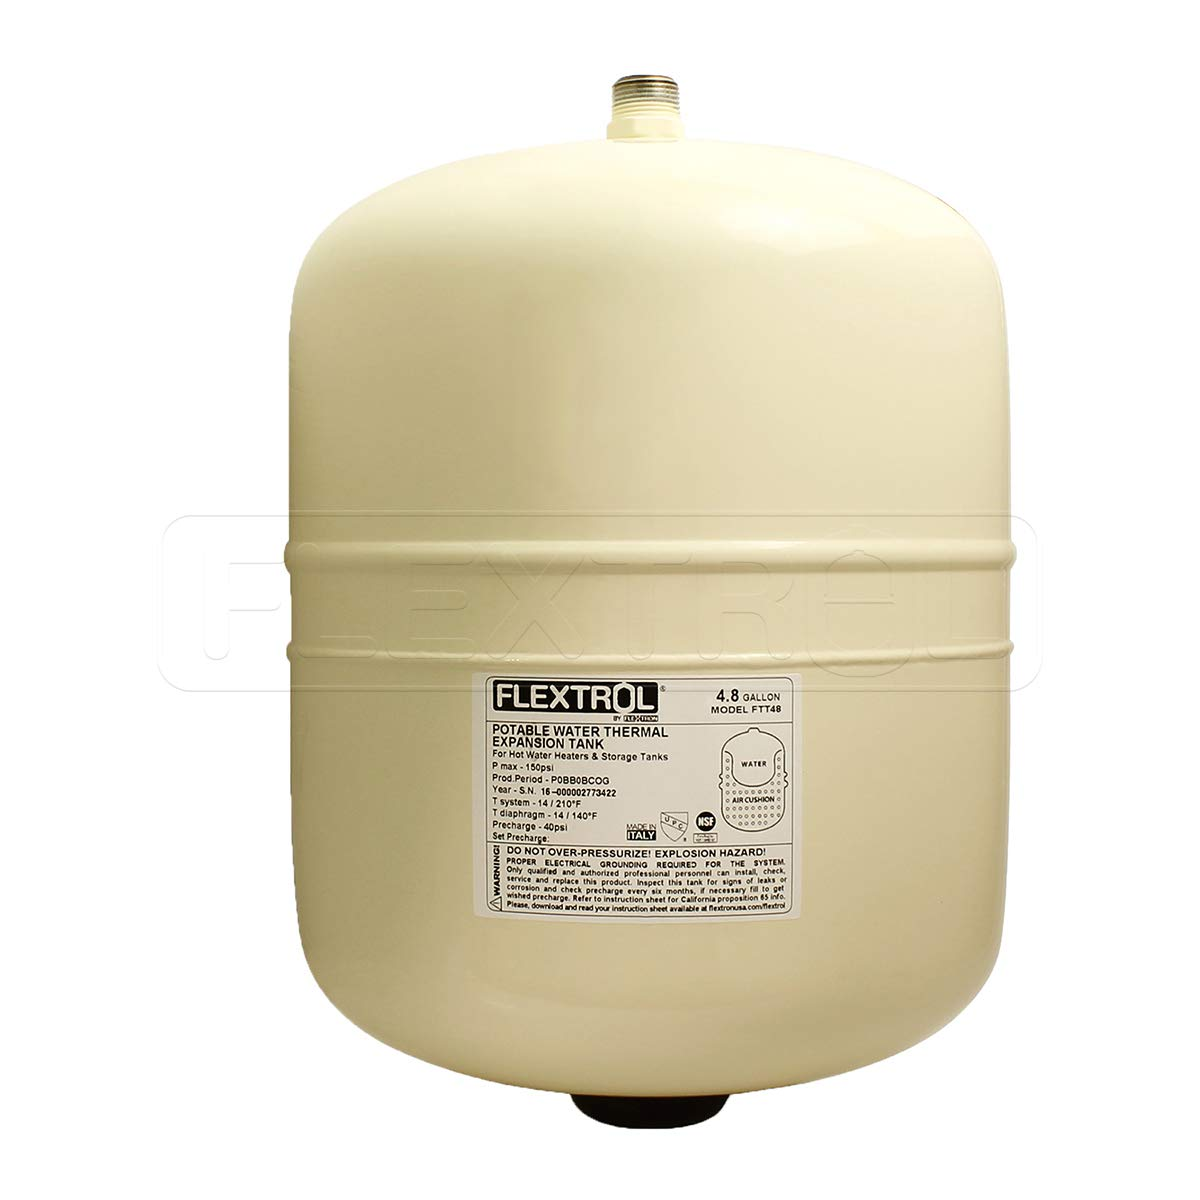 Flextrol Thermal Expansion Tanks - For Hot Water Heaters 4.8 Gallons, Carbon Steel Shell, Stainless Steel 3/4 Inch MIP Connection, Butyl Diaphragm, 150 PSI, 210 Degrees Fahrenheit, Almond Color